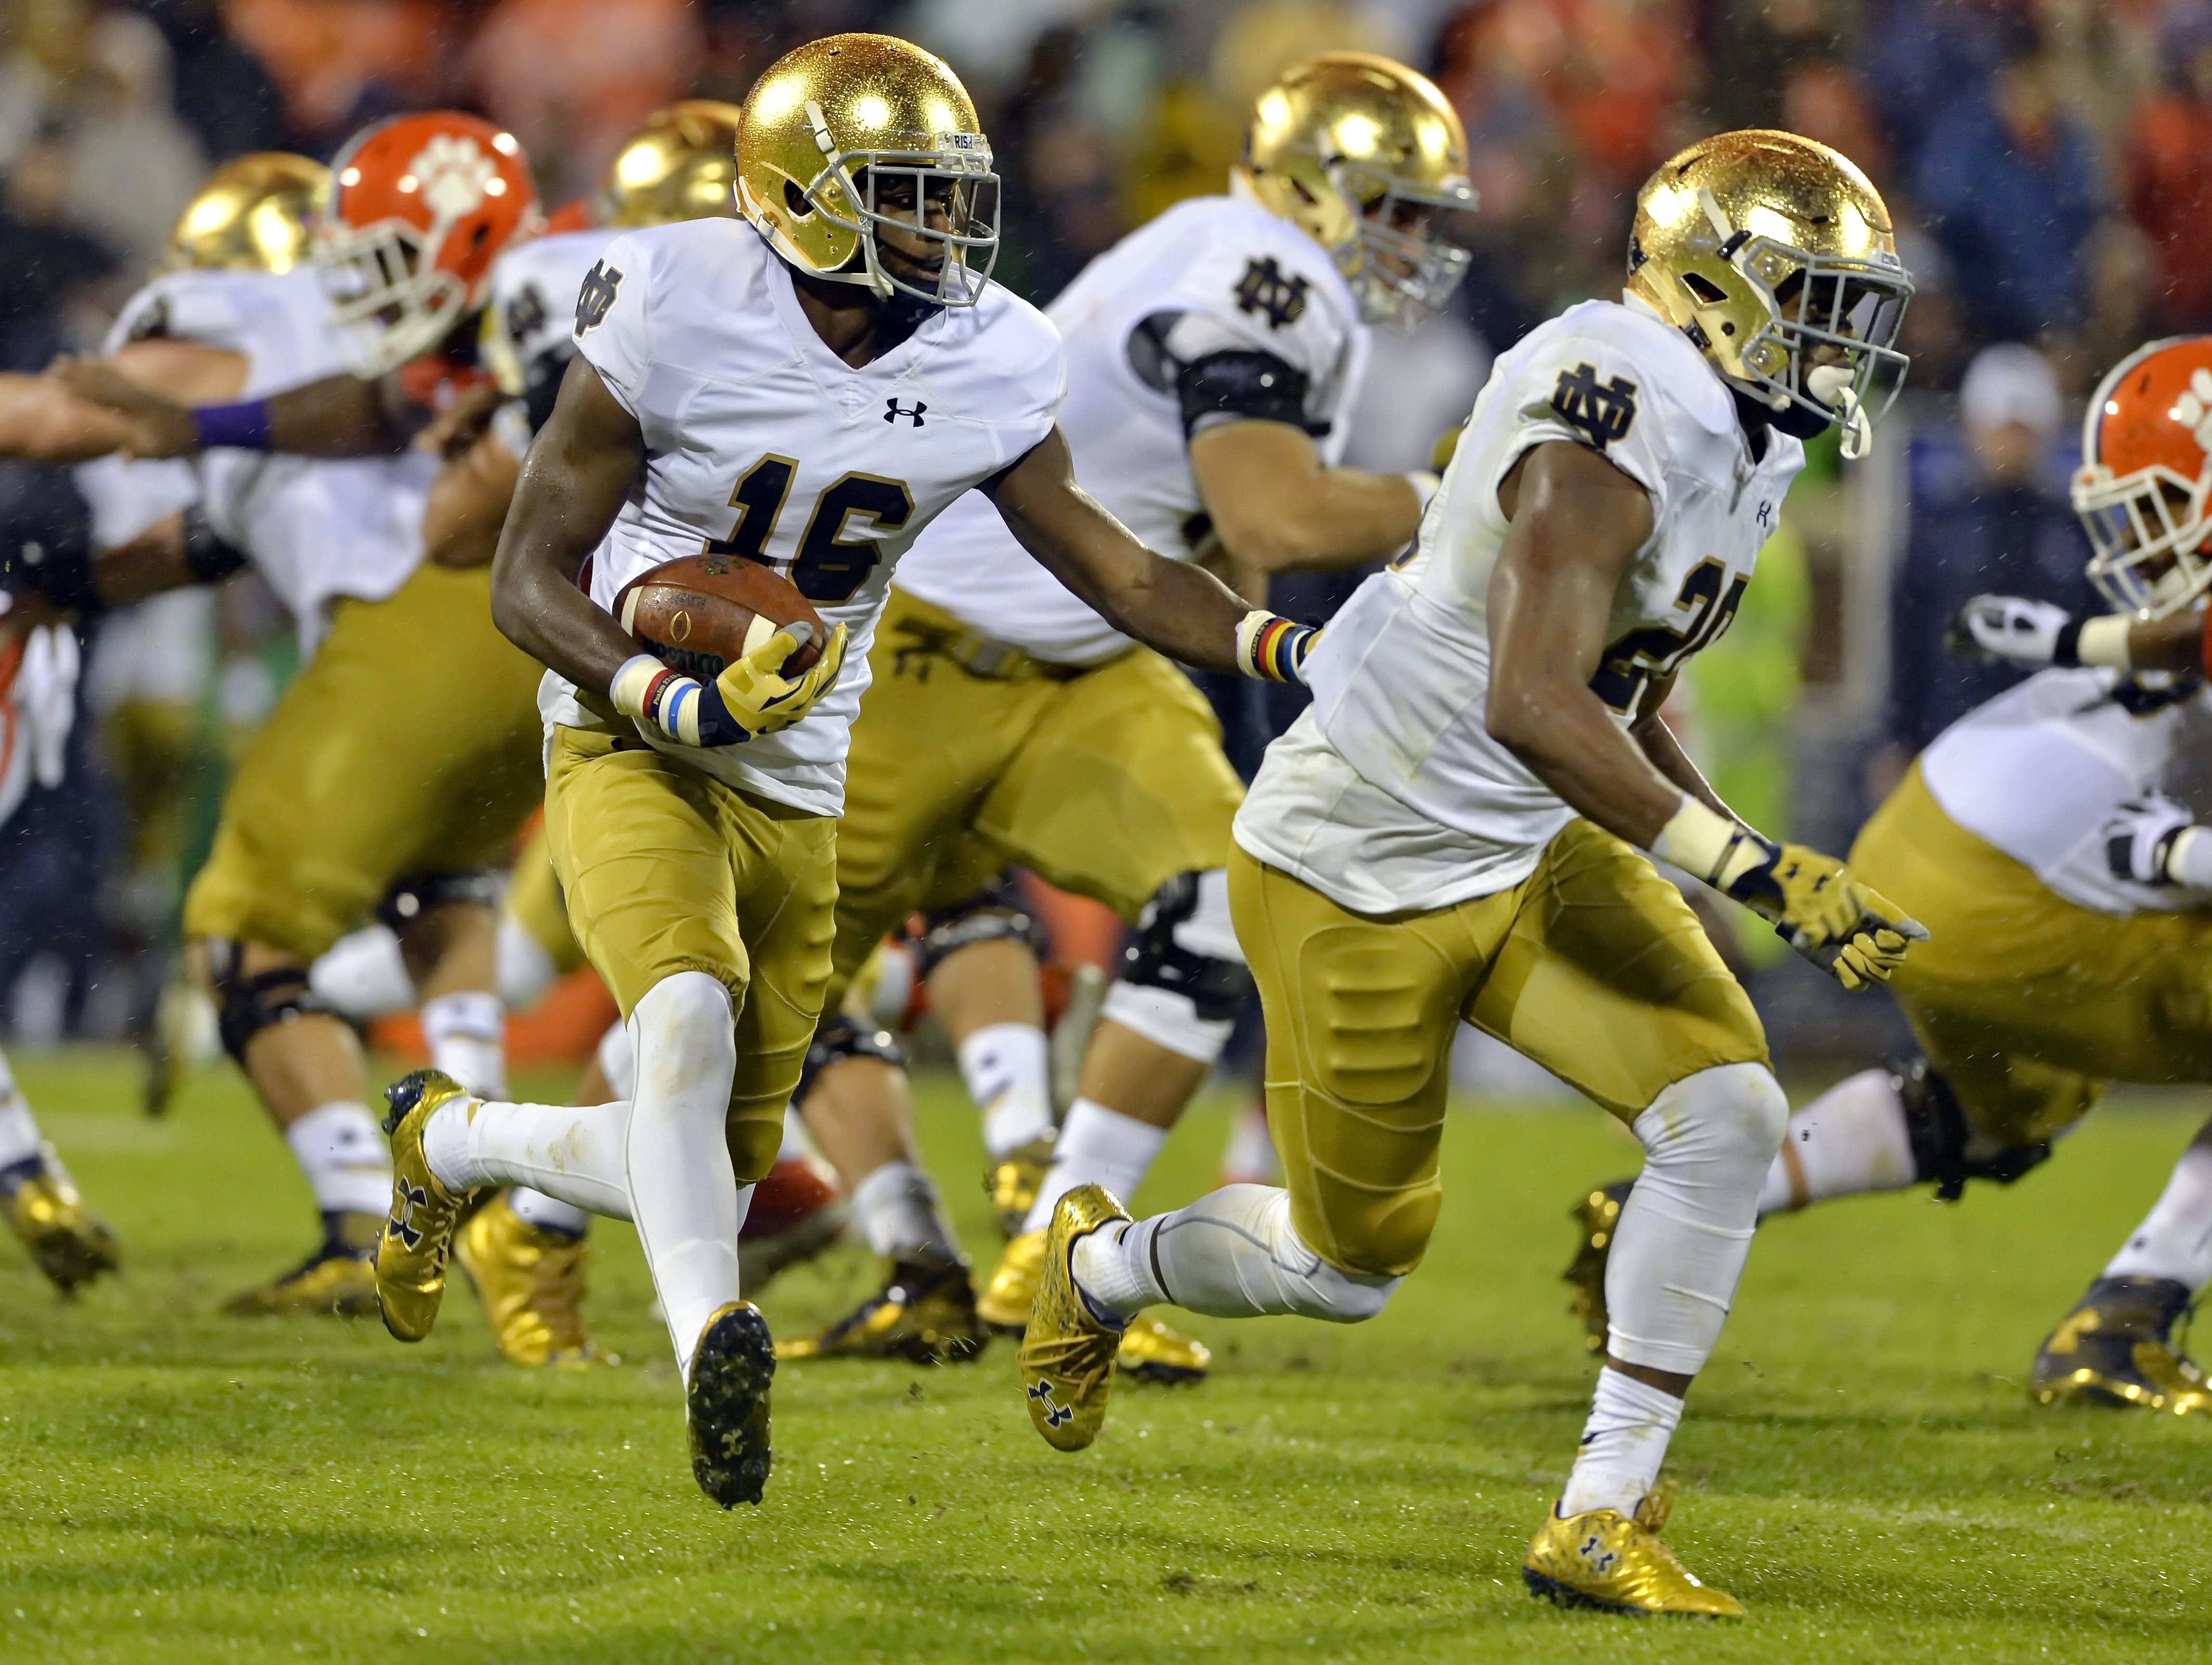 FILE - In this Oct. 3, 2015, file photo, Notre Dame's Torii Hunter Jr. (16) with blocking help from C. J. Prosise, rushes out of the backfield during the first half of an NCAA college football game against Clemson  in Clemson,  S.C.  The Los Angeles Angel